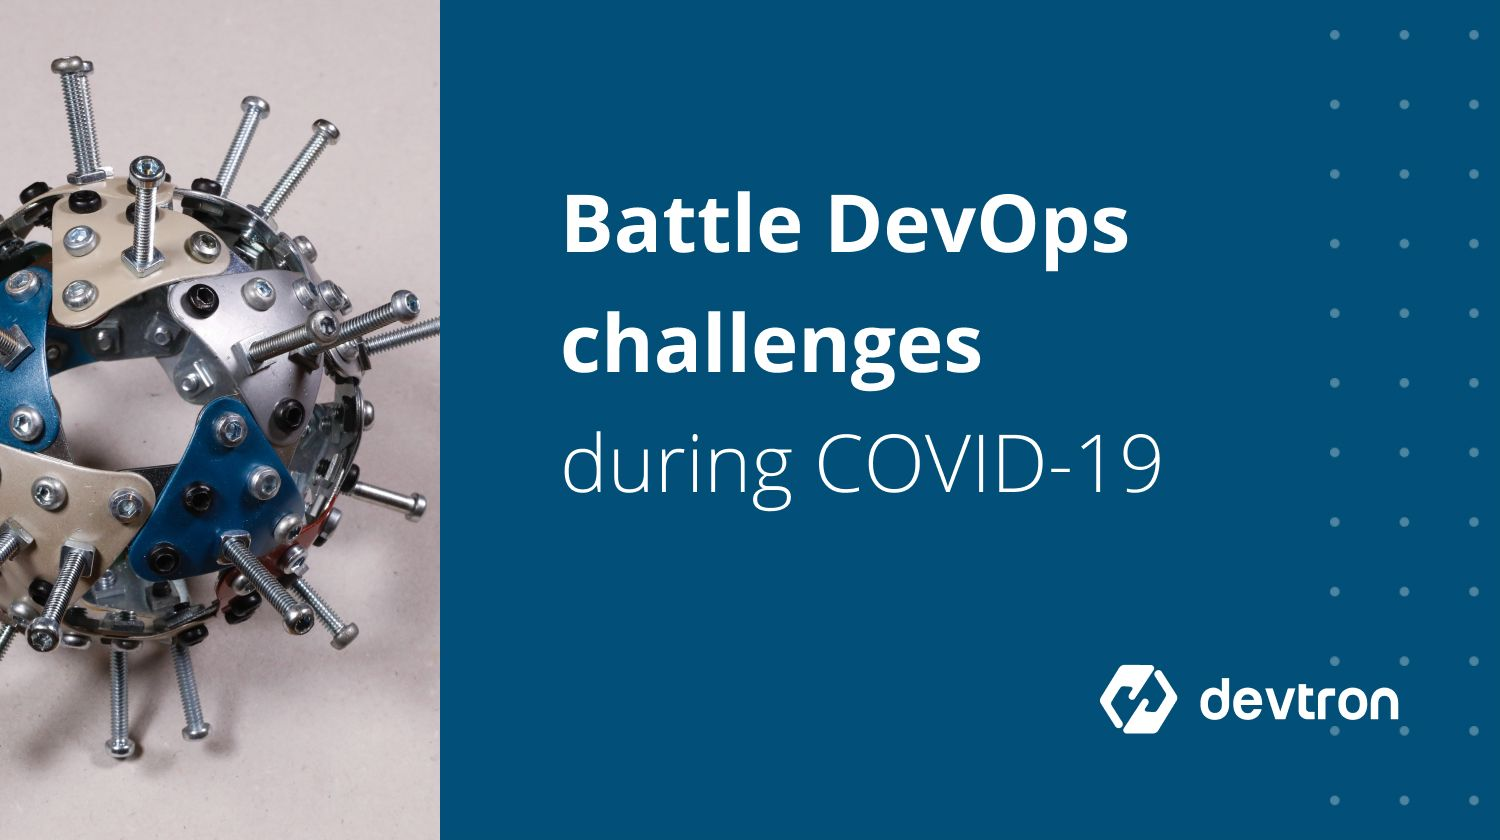 How to overcome Top DevOps challenges in the time of Covid-19